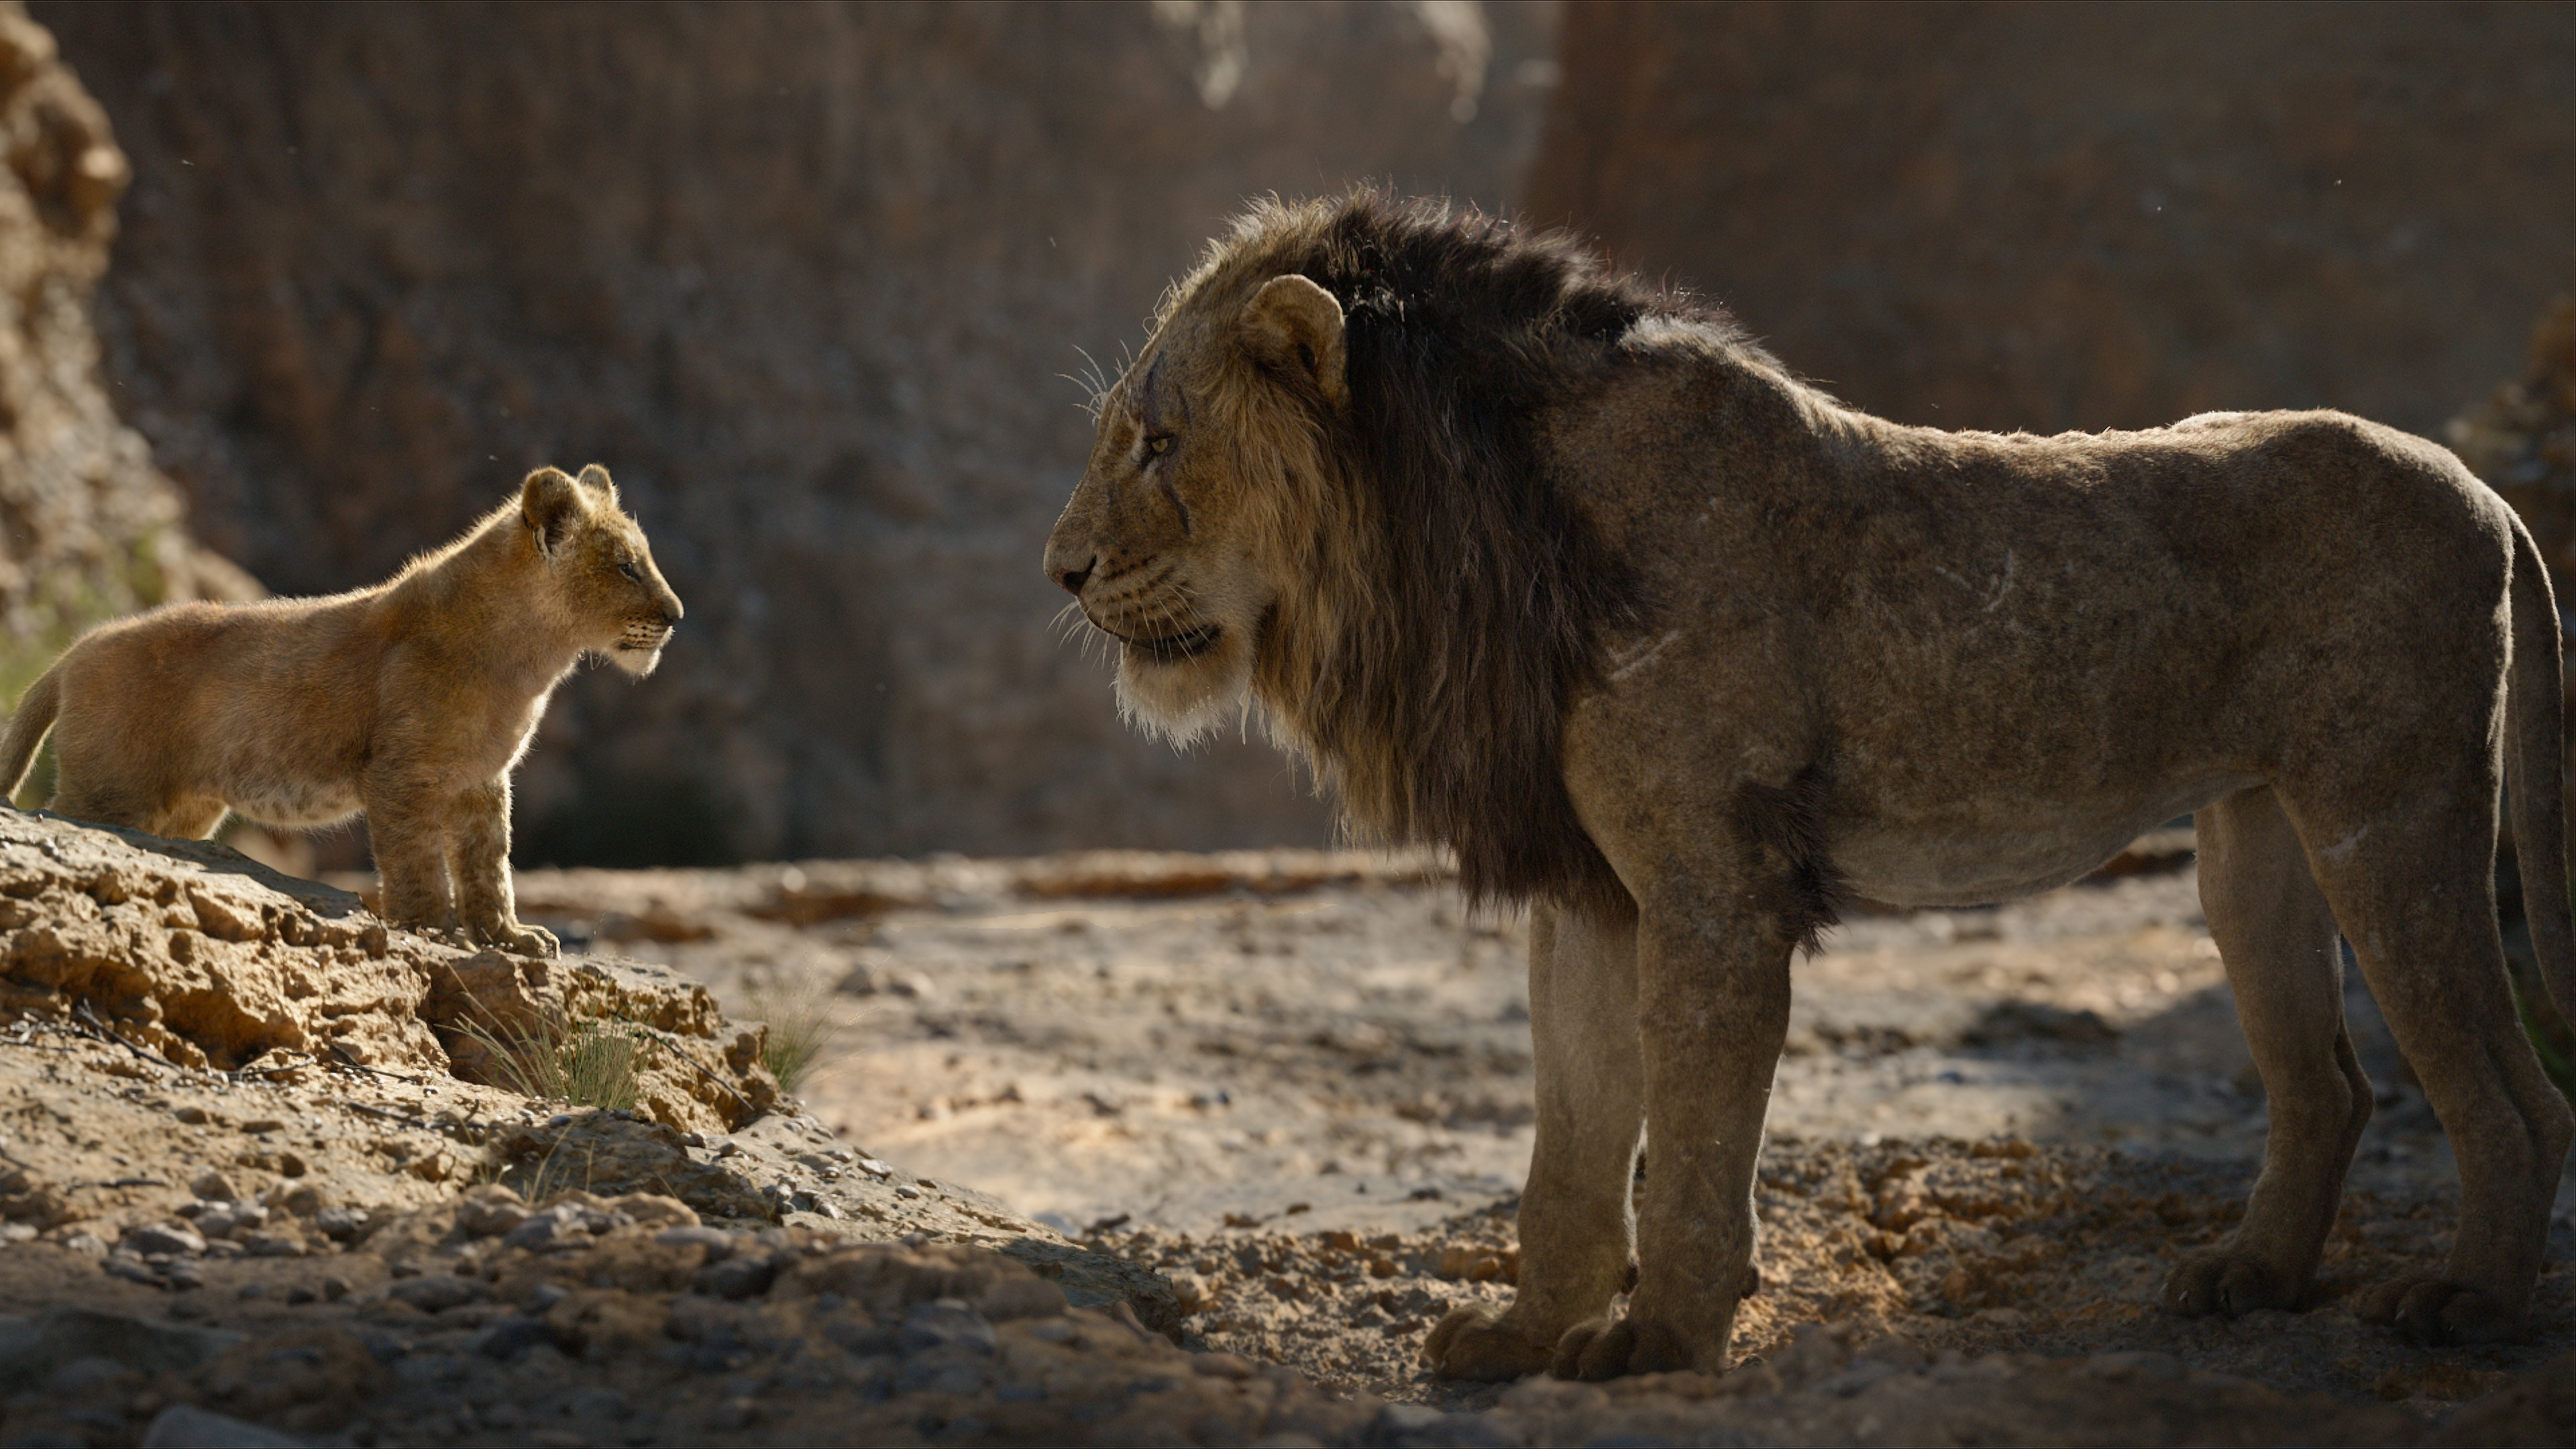 The Lion King Film 4k Wallpaper - Lion King Mufasa 2019 , HD Wallpaper & Backgrounds